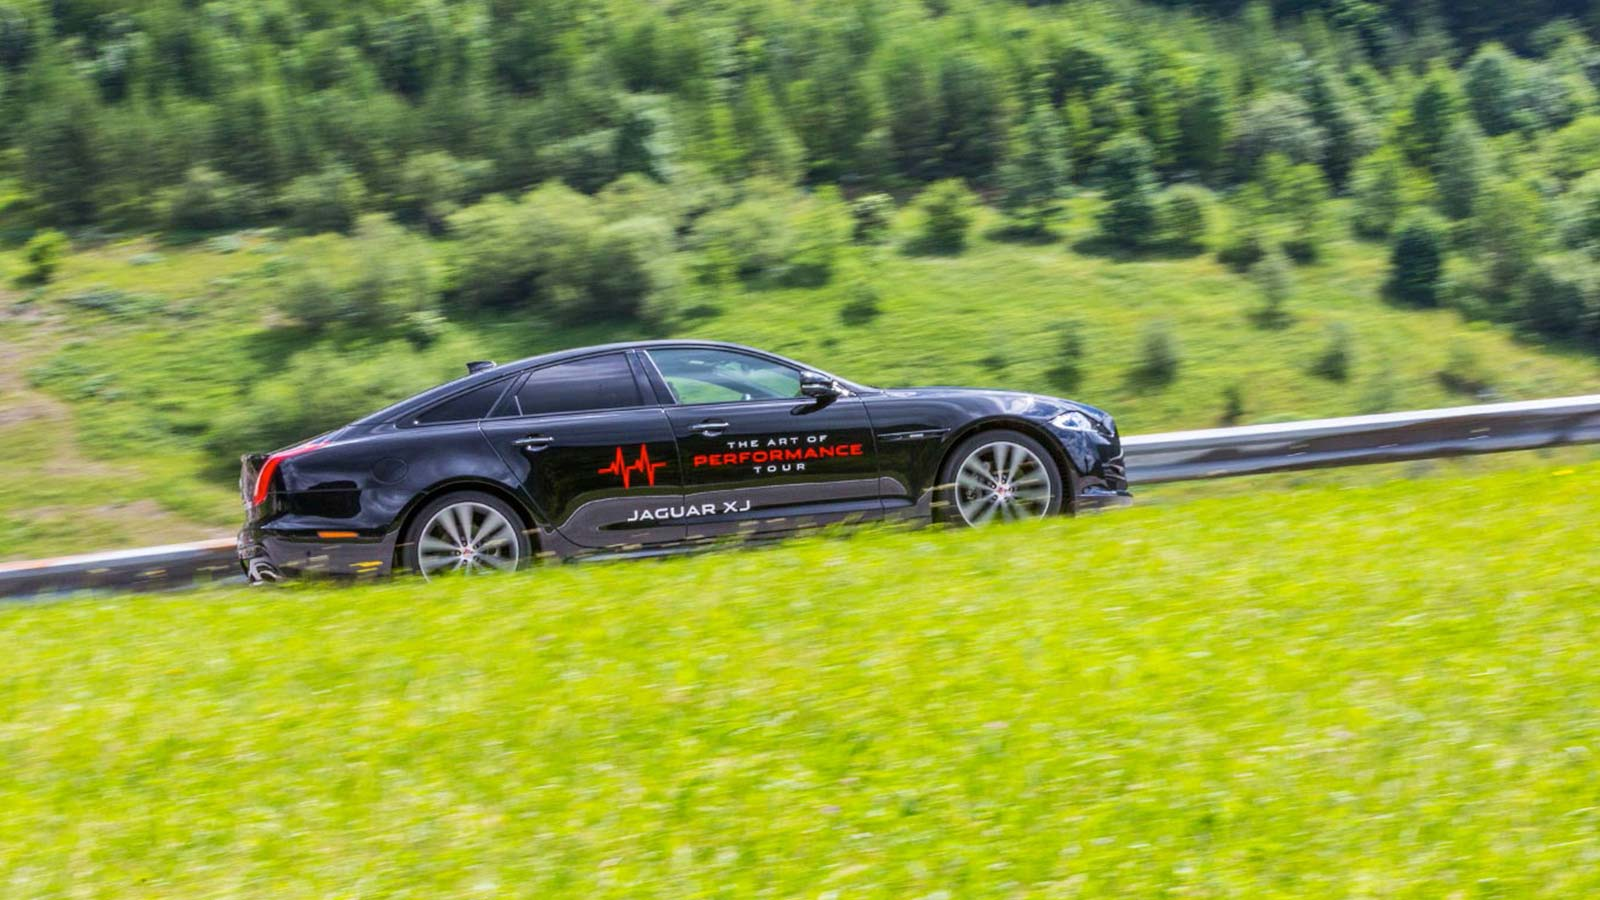 black car on the side in motion surrounded by greenery.